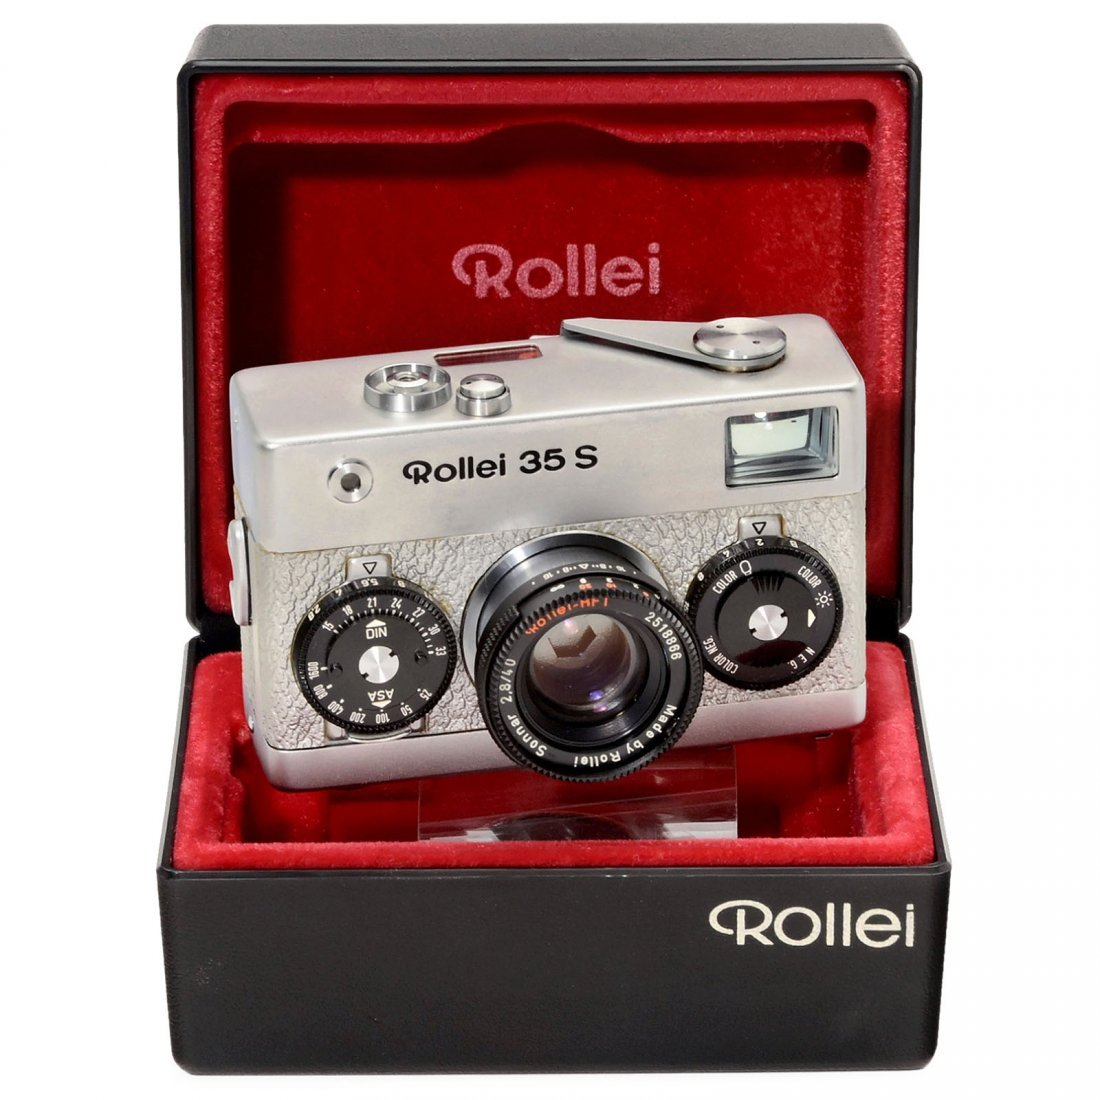 Special Model: Rollei 35 S Chrome/Silver, 1978